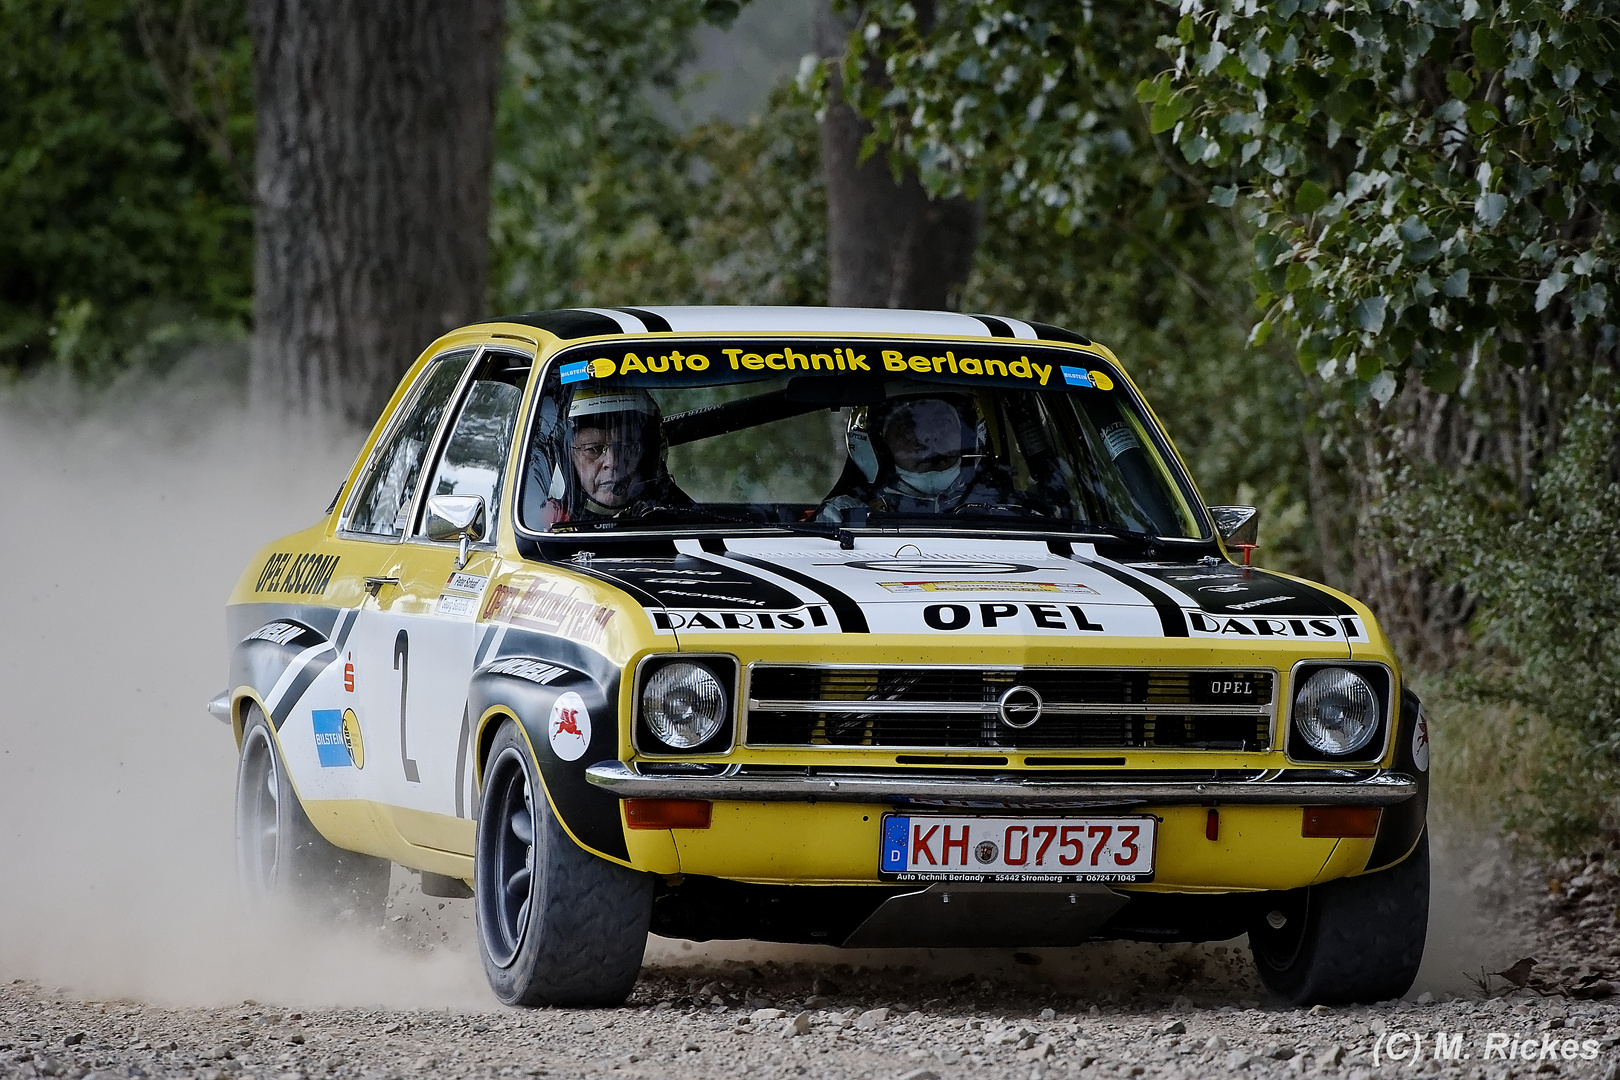 opel ascona auto technik berlandy foto bild sport motorsport rallyesport bilder auf. Black Bedroom Furniture Sets. Home Design Ideas